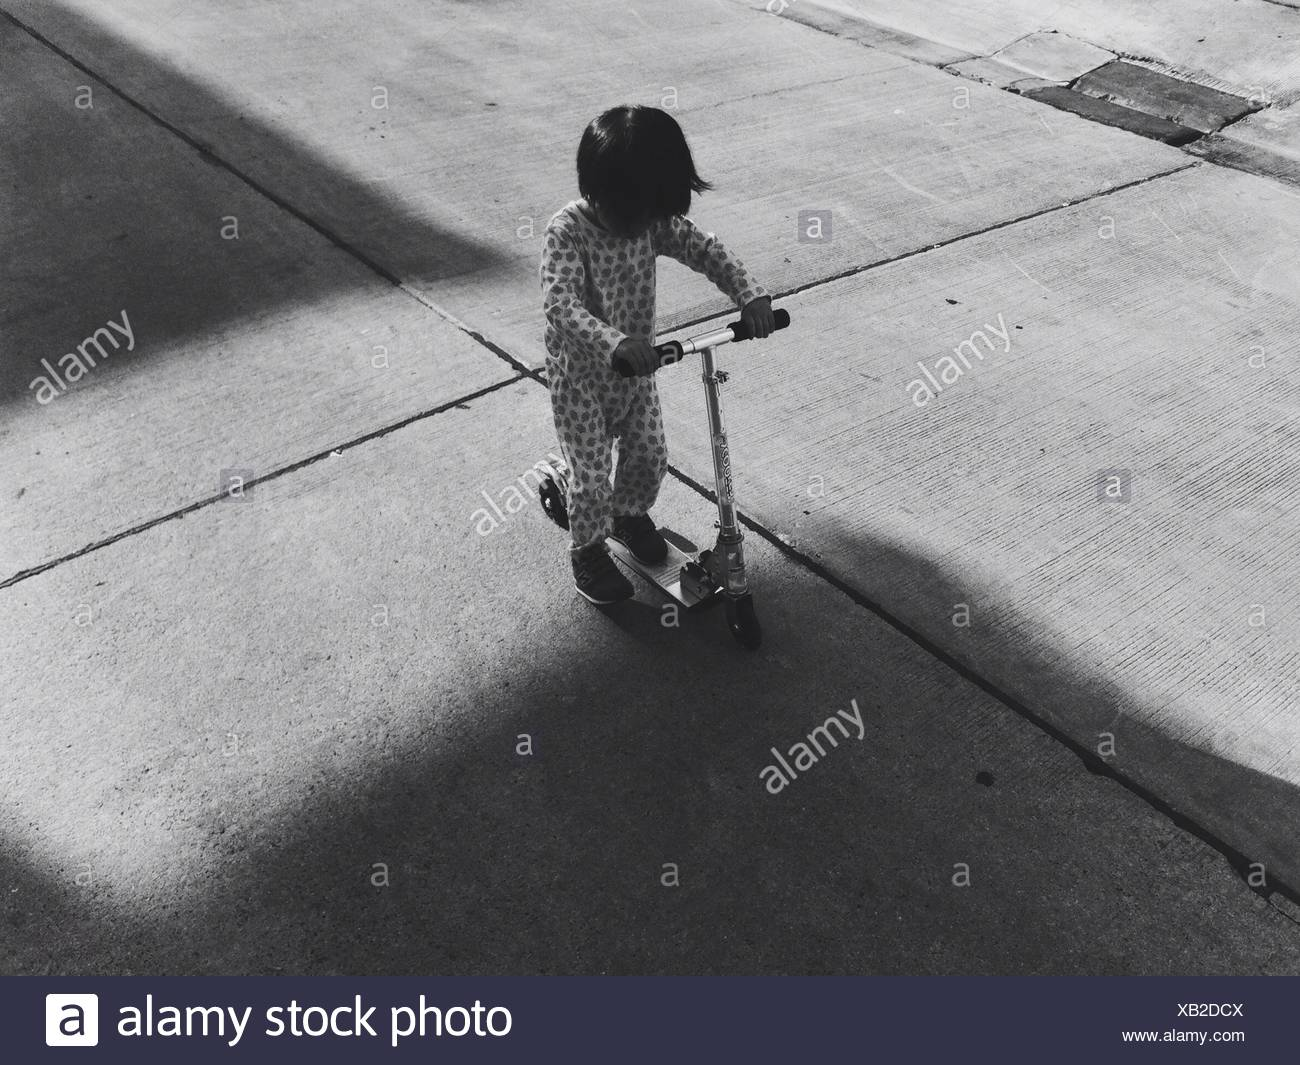 High Angle View Of Boy Riding Push Scooter - Stock Image